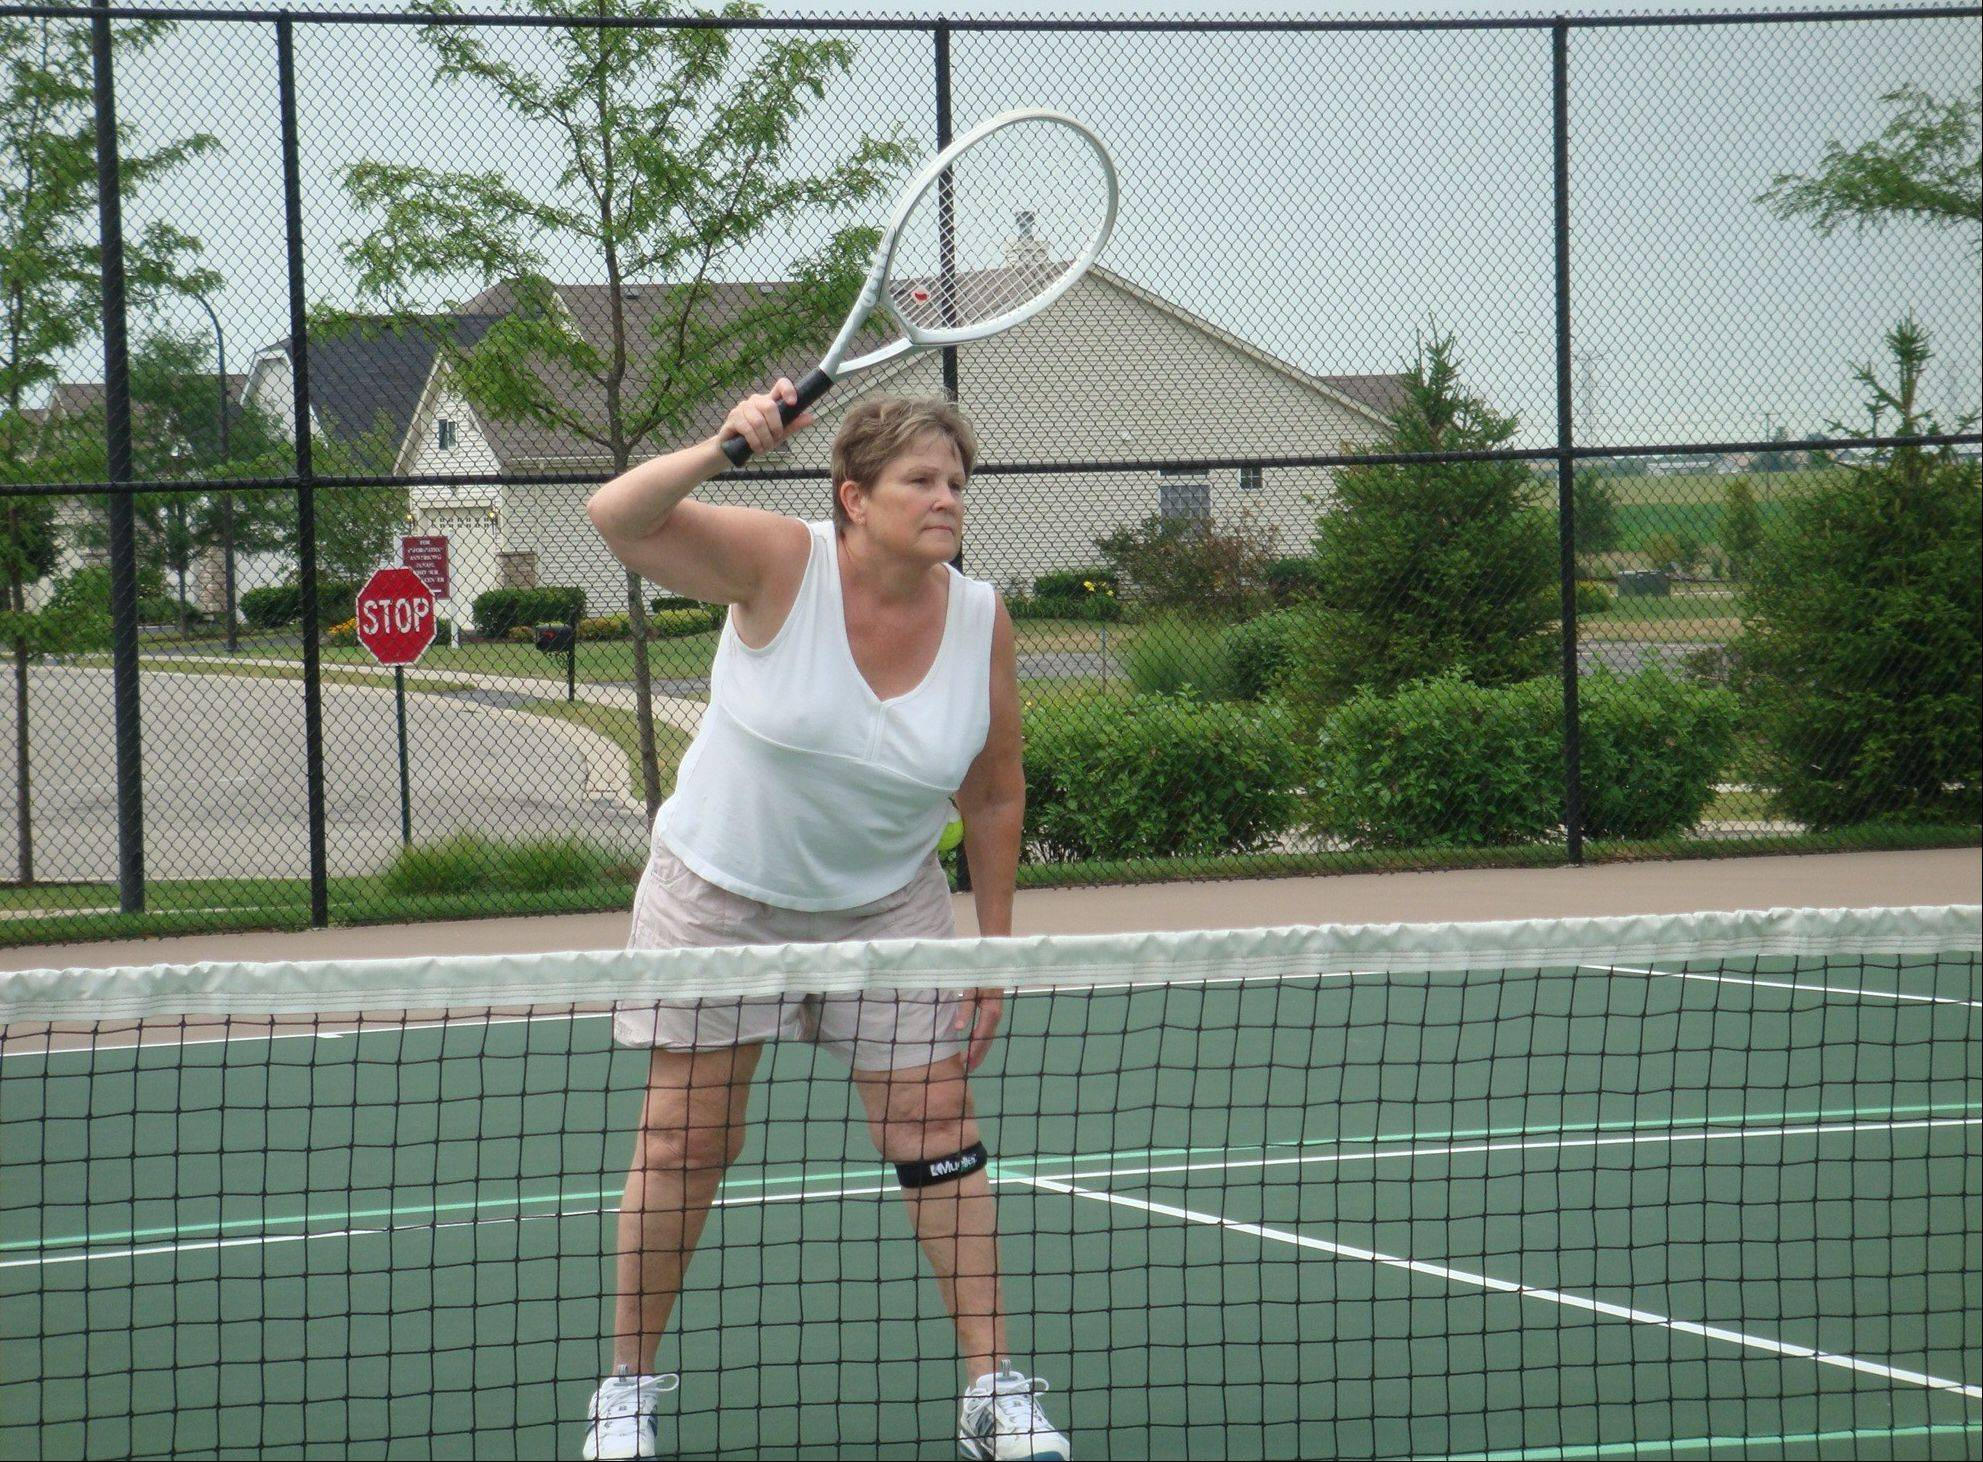 At Carillon Club of Naperville, Karen Havel can often be seen playing a lively game of tennis or taking water aerobics in an effort to stay fit, despite the fact that in the past she has had a shoulder muscle tear and a tear of the meniscus in one knee and still suffers from arthritis in both knees.